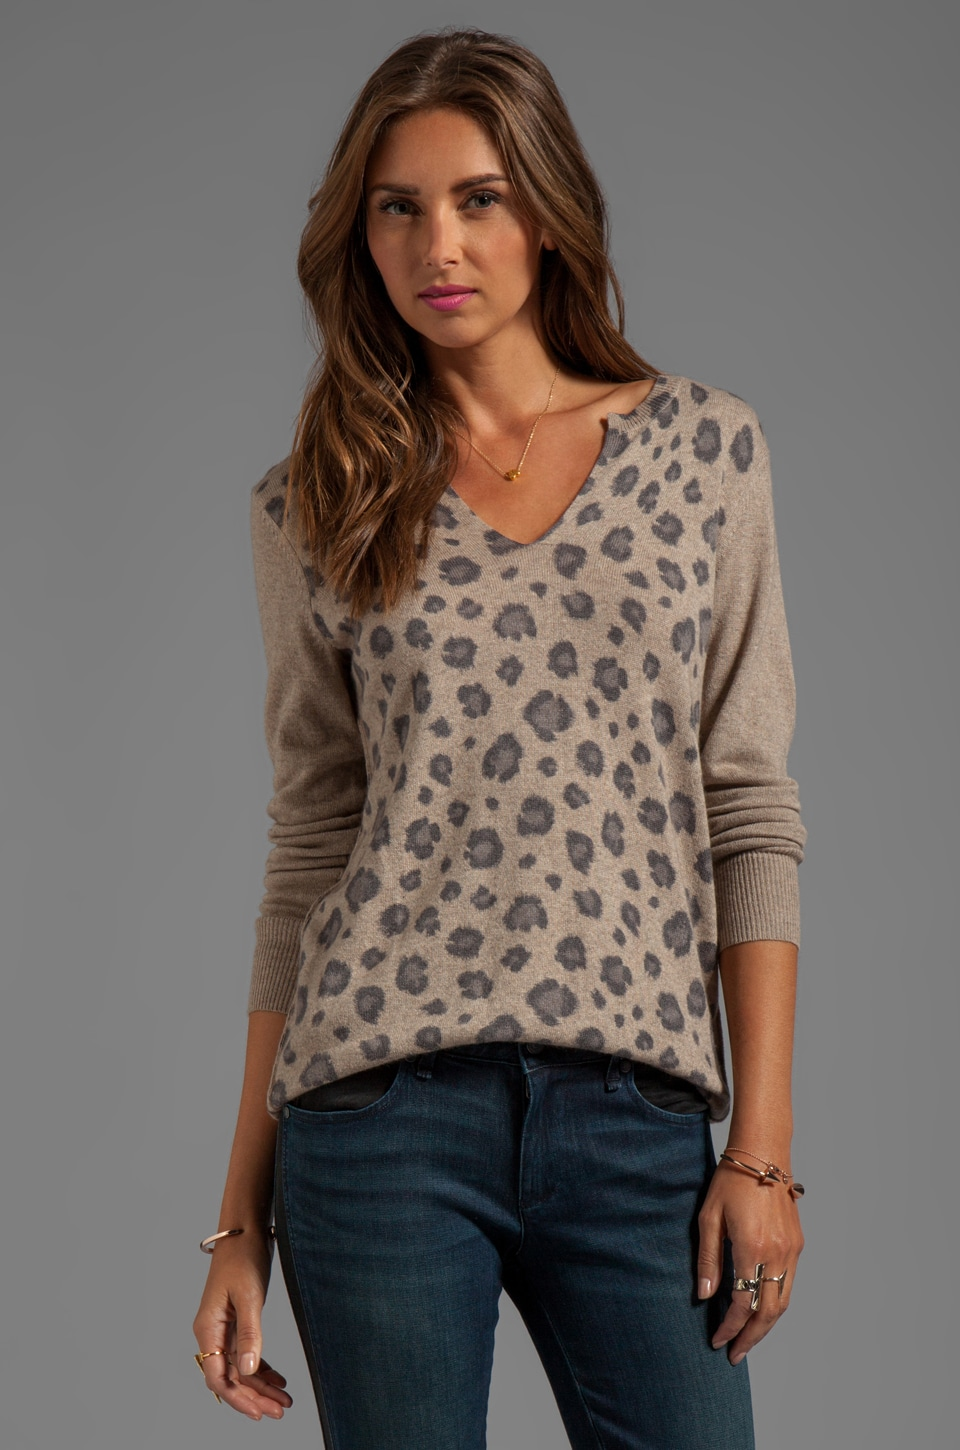 Rebecca Taylor Leopard Slit Sweater in Fawn Combo